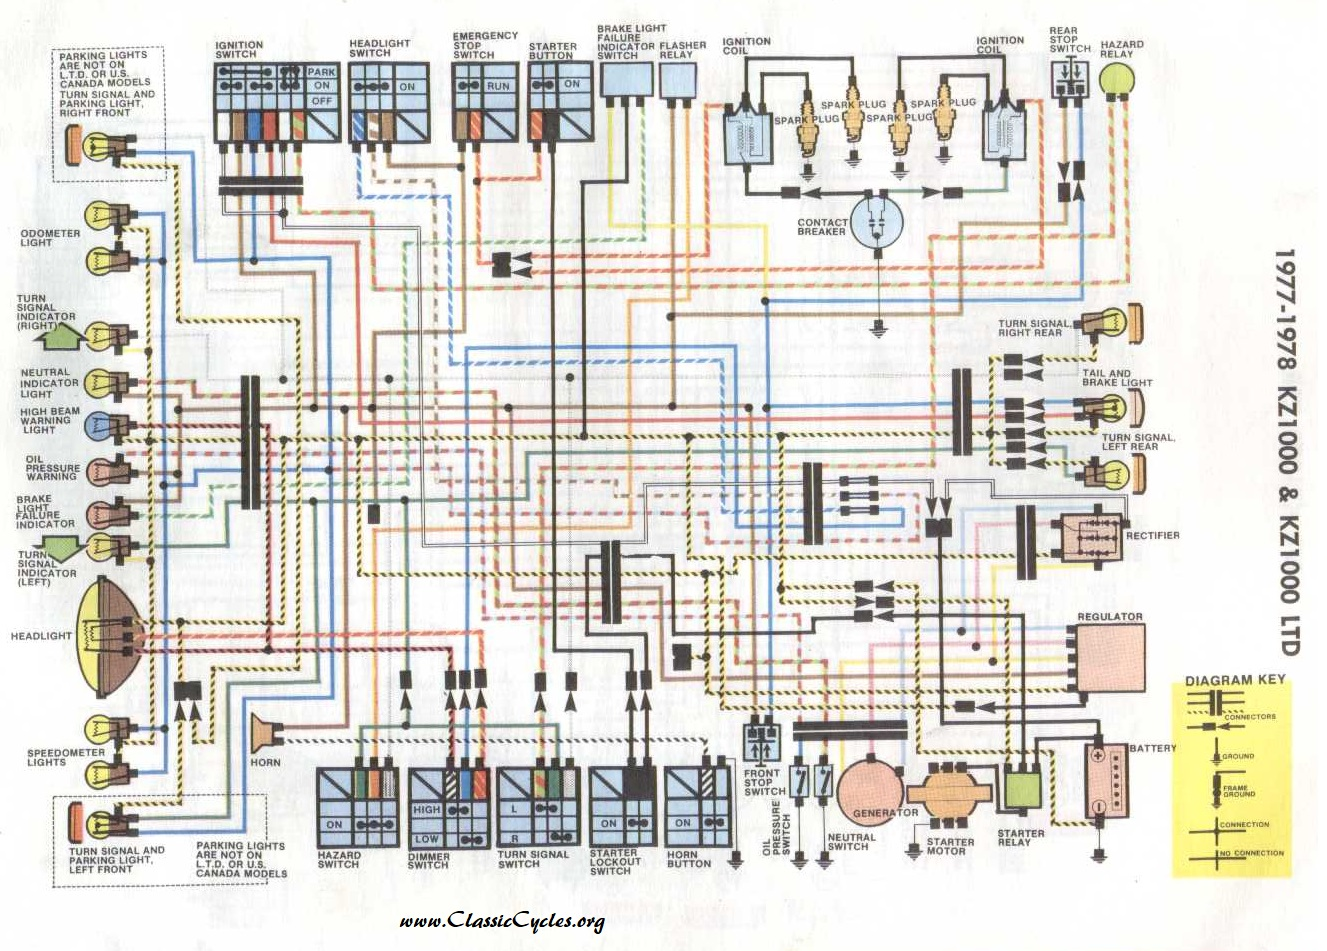 Strange Kz550 Wiring Diagram Wiring Diagram Data Schema Wiring Cloud Overrenstrafr09Org